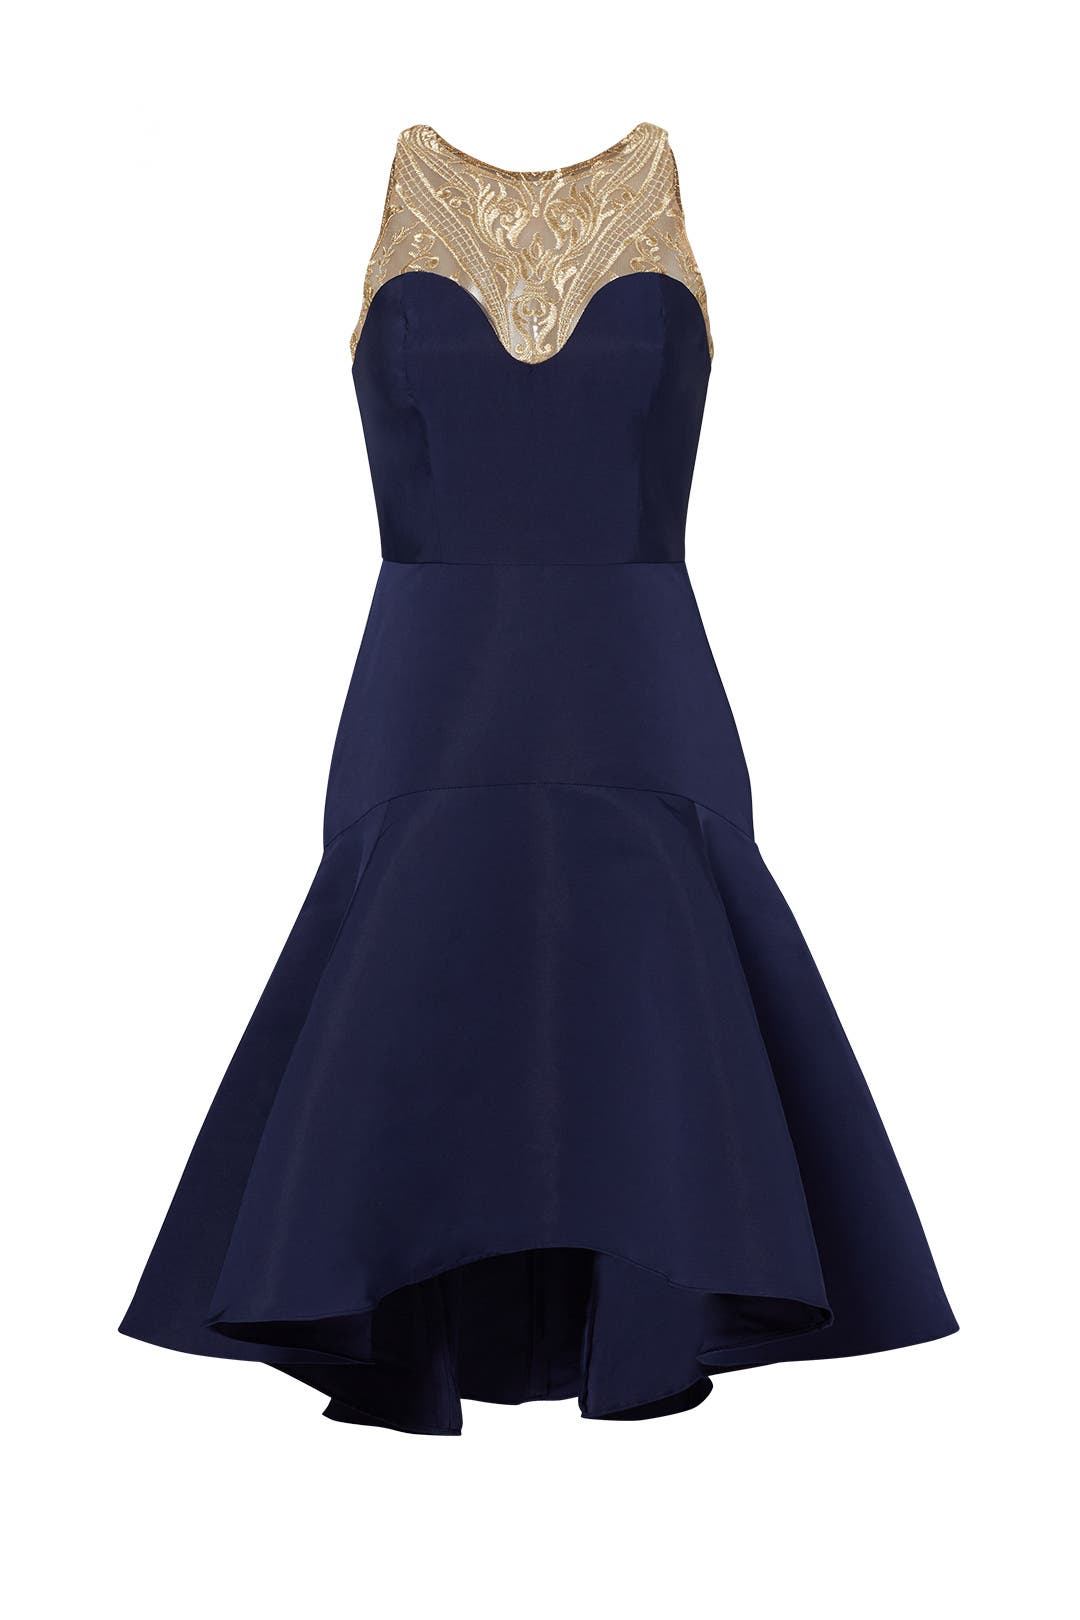 Clearance sale discounted dresses clothing rent the runway marchesa notte navy golden arch dress ombrellifo Choice Image